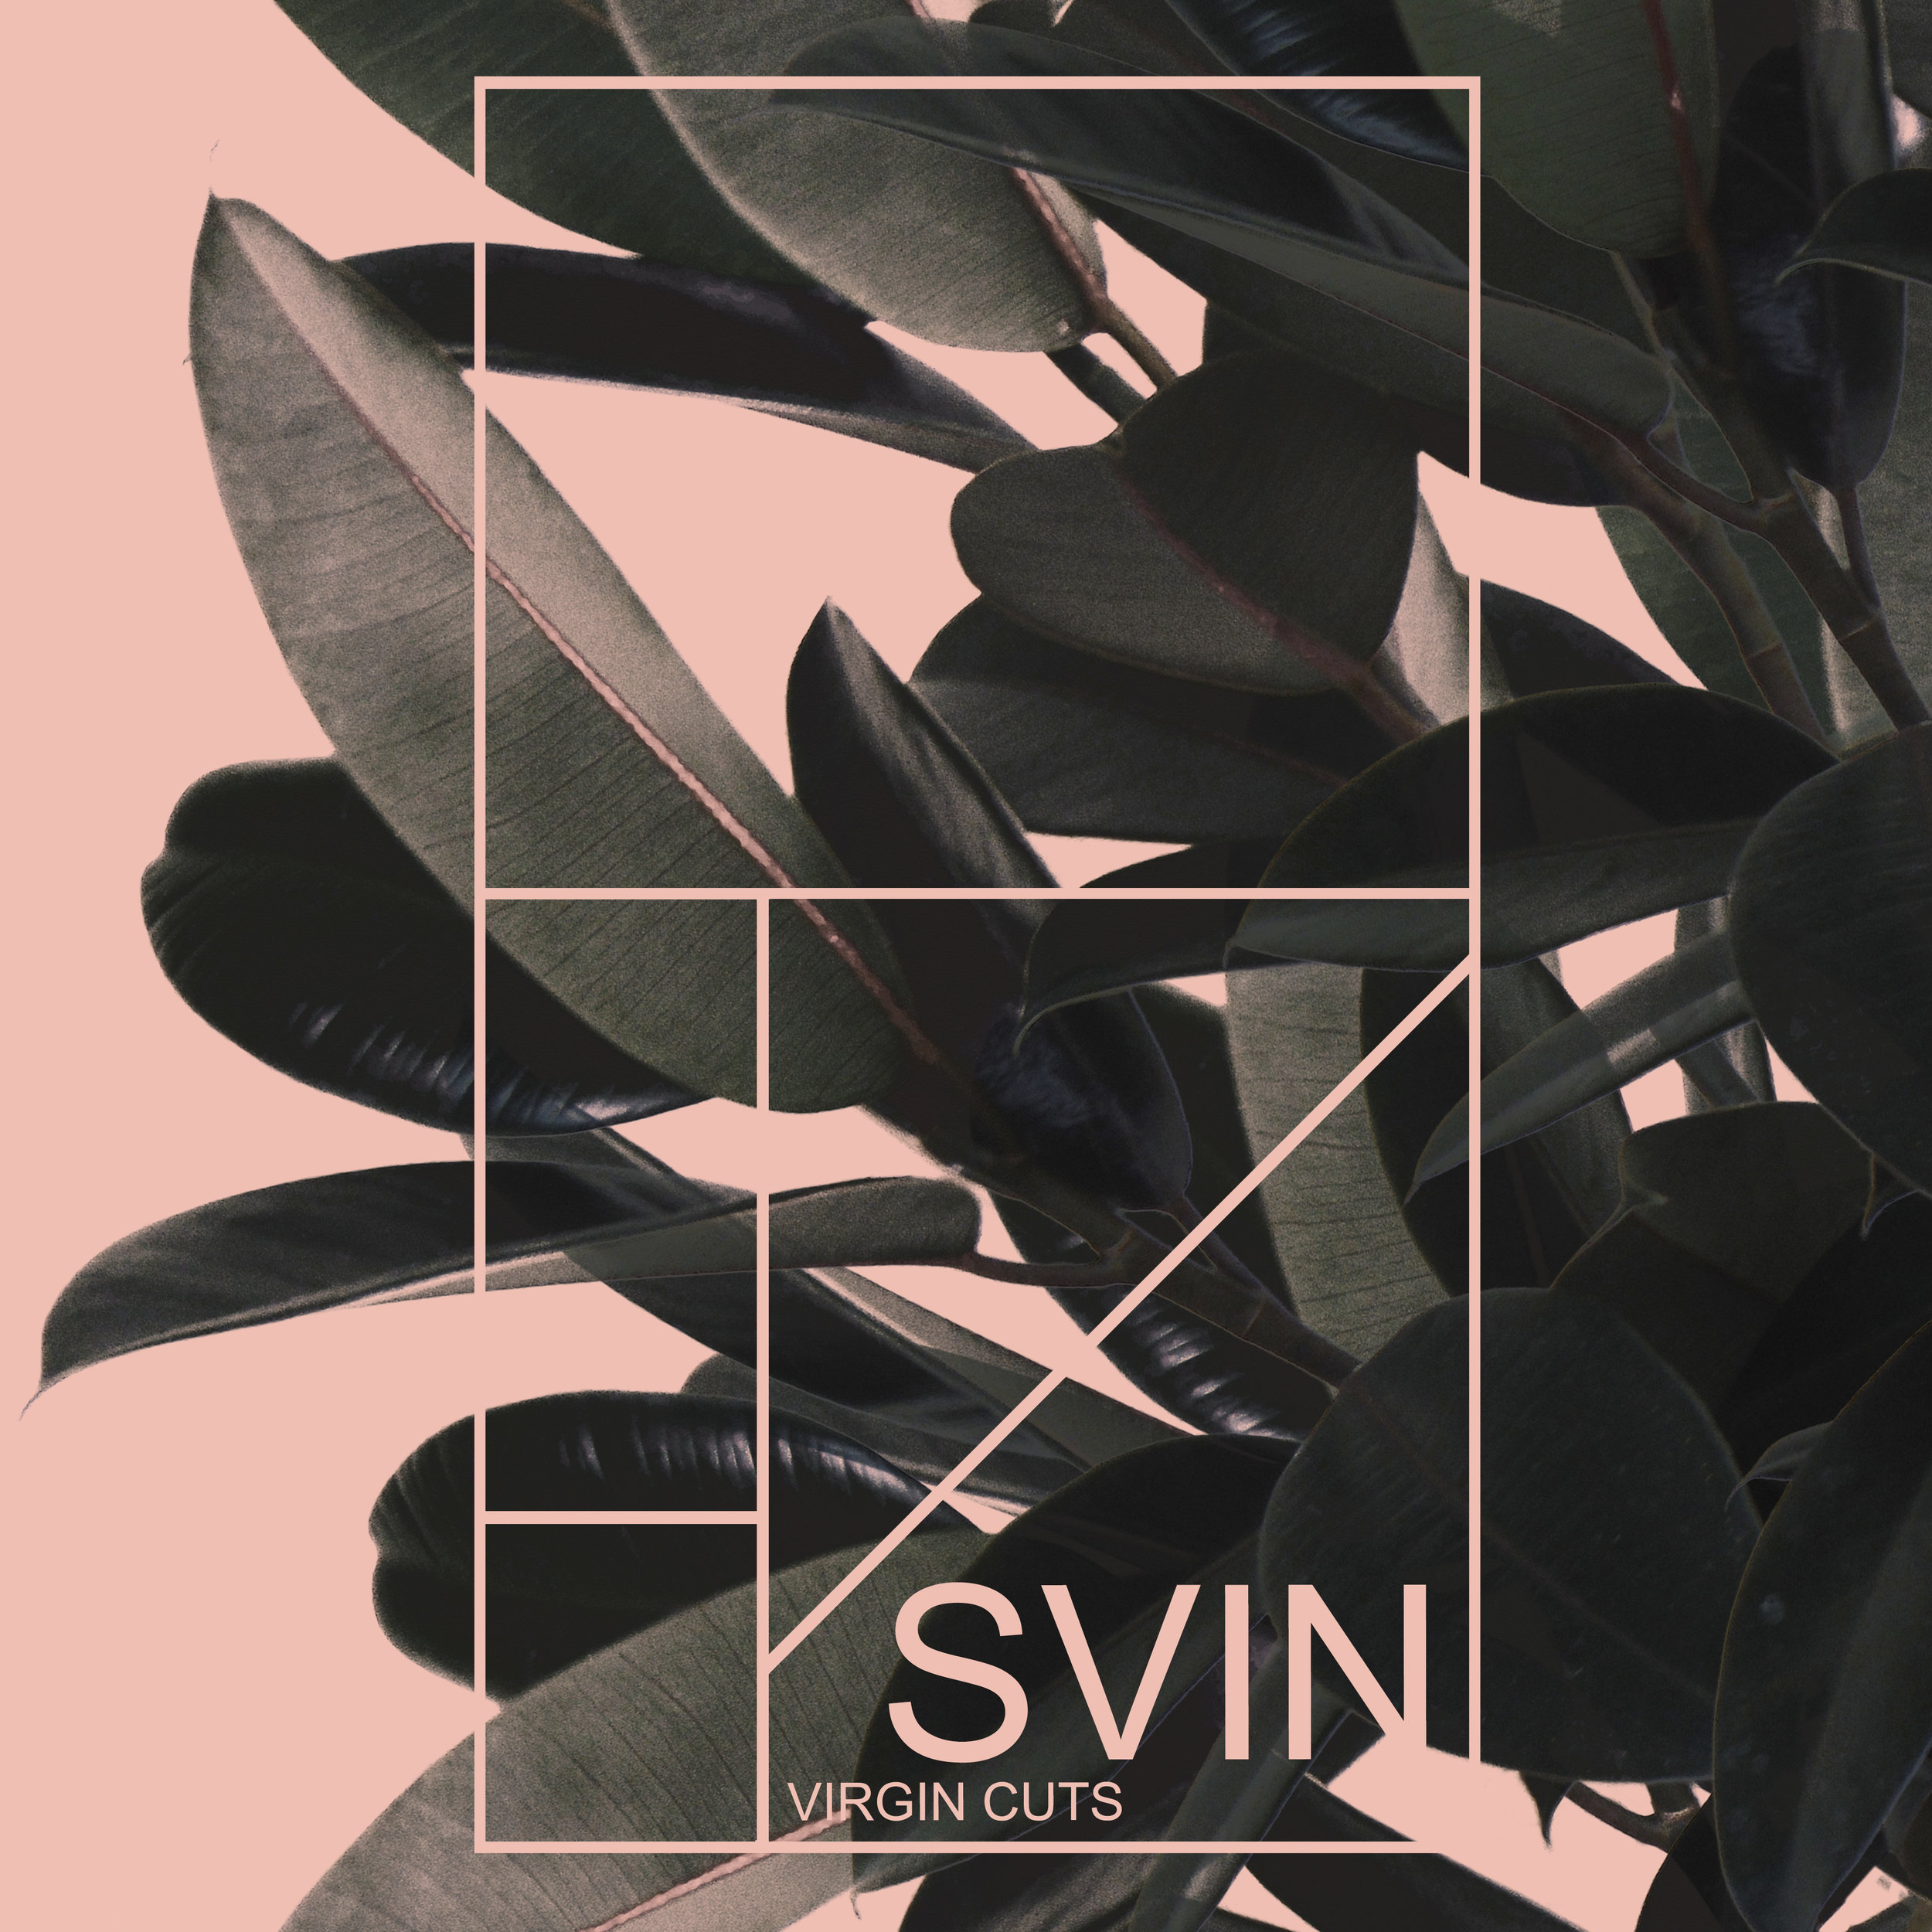 SVIN - Virgin Cuts (Mom Eat Dad Records 2018)  HPM: Reeds/keys Lars Bech Pilgaard: Guitars/keys Thomas Eiler: Drums Mija Milovic: Vocals Nils Gröndahl: Strings Rasmus Kjær: Keys